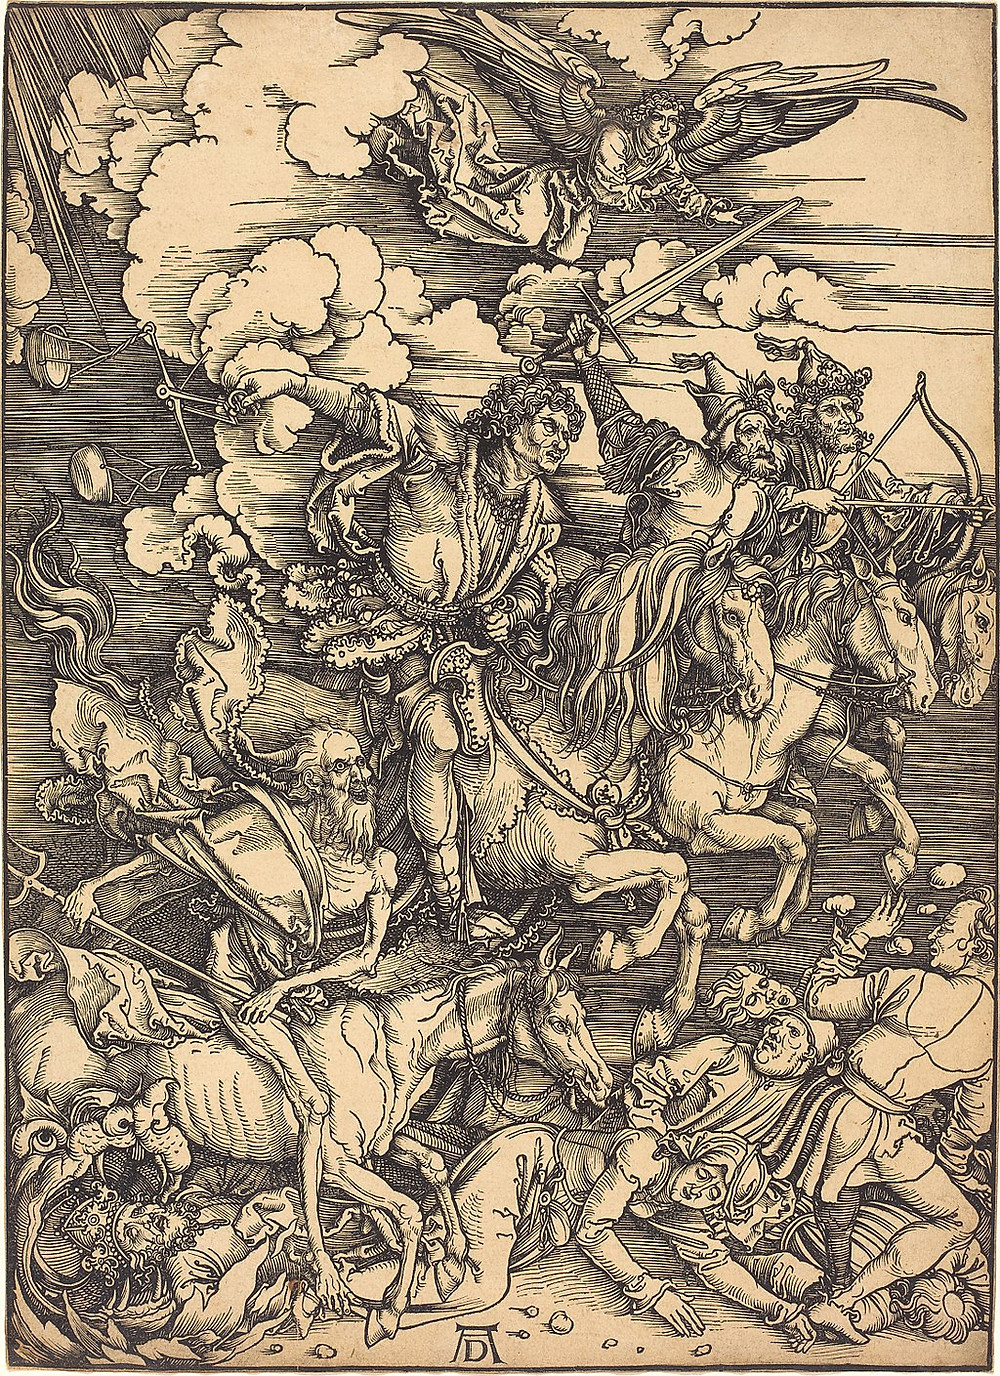 The Four Horsemen, Albrecht Durer, c 1496, National Gallery of Art